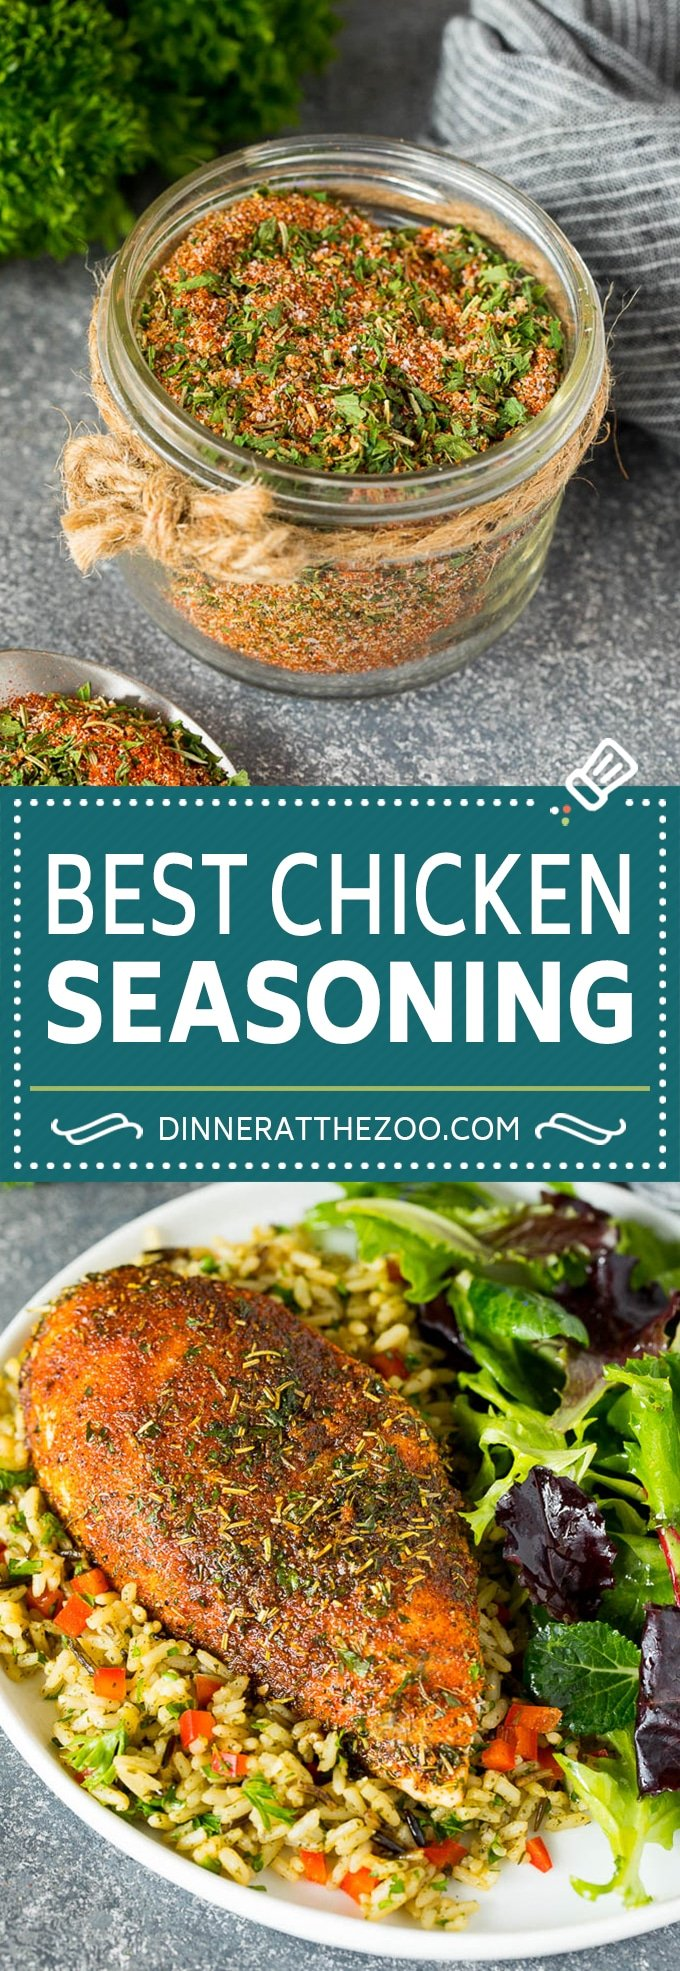 This chicken seasoning is the perfect blend of herbs and spices that produces flavorful and juicy chicken each and every time.